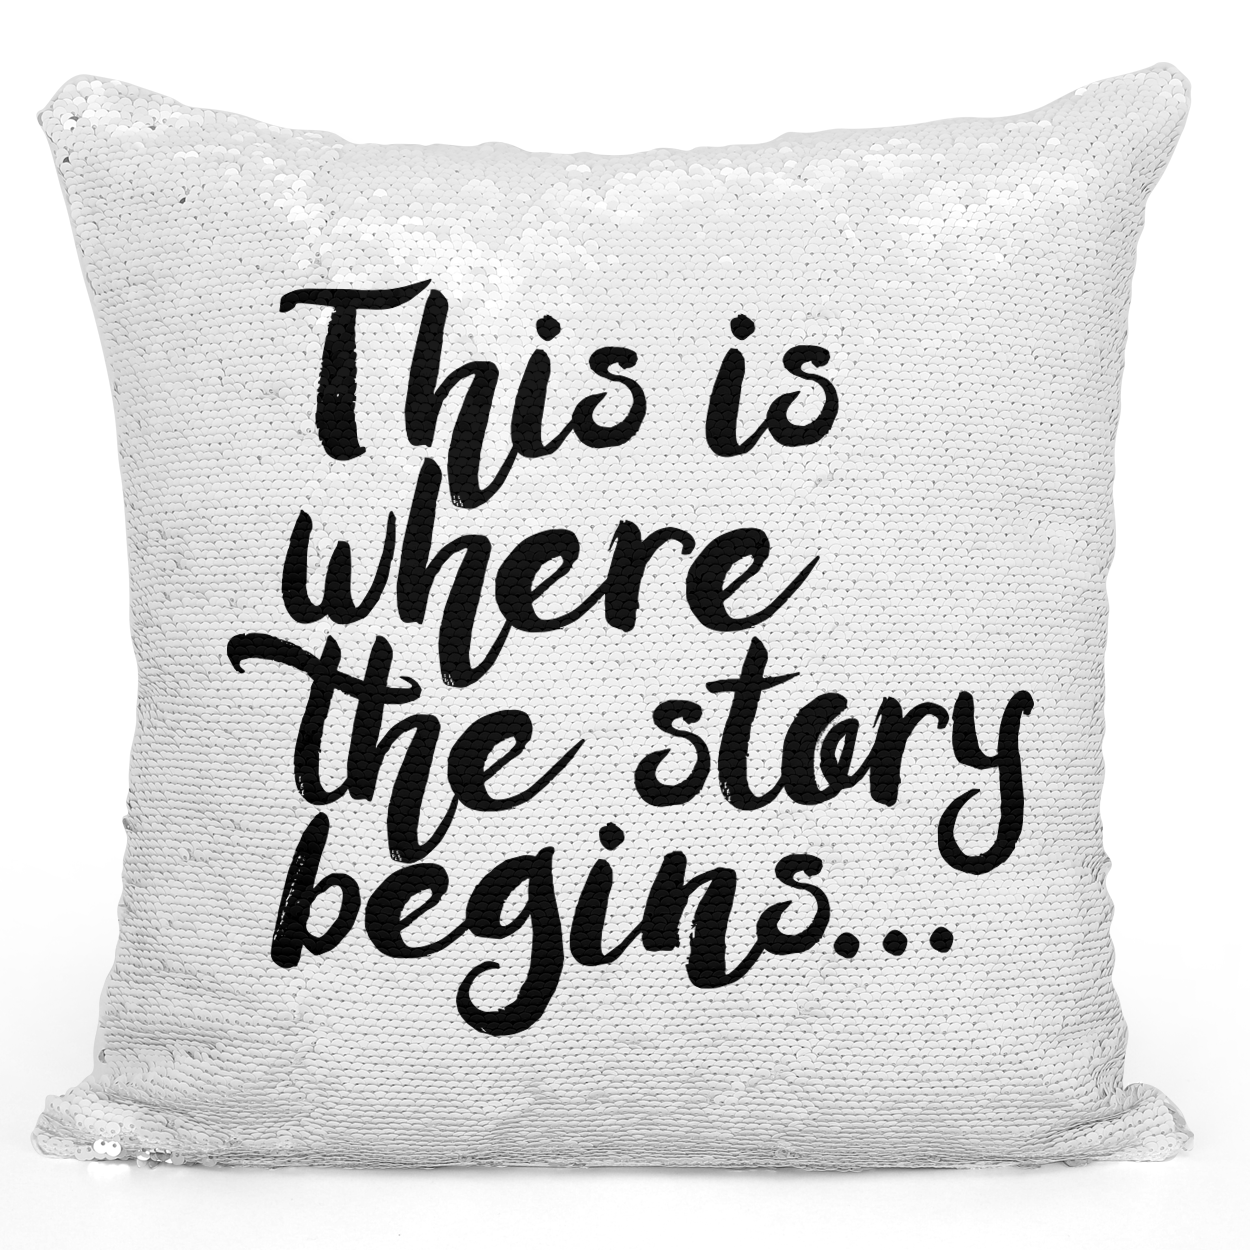 Sequin Pillow Magic Mermaid Throw Pillow This Is Where The Story Begins - Durable White 16 x 16 inch Square Home Office Decor Accent Pillow Loud Universe